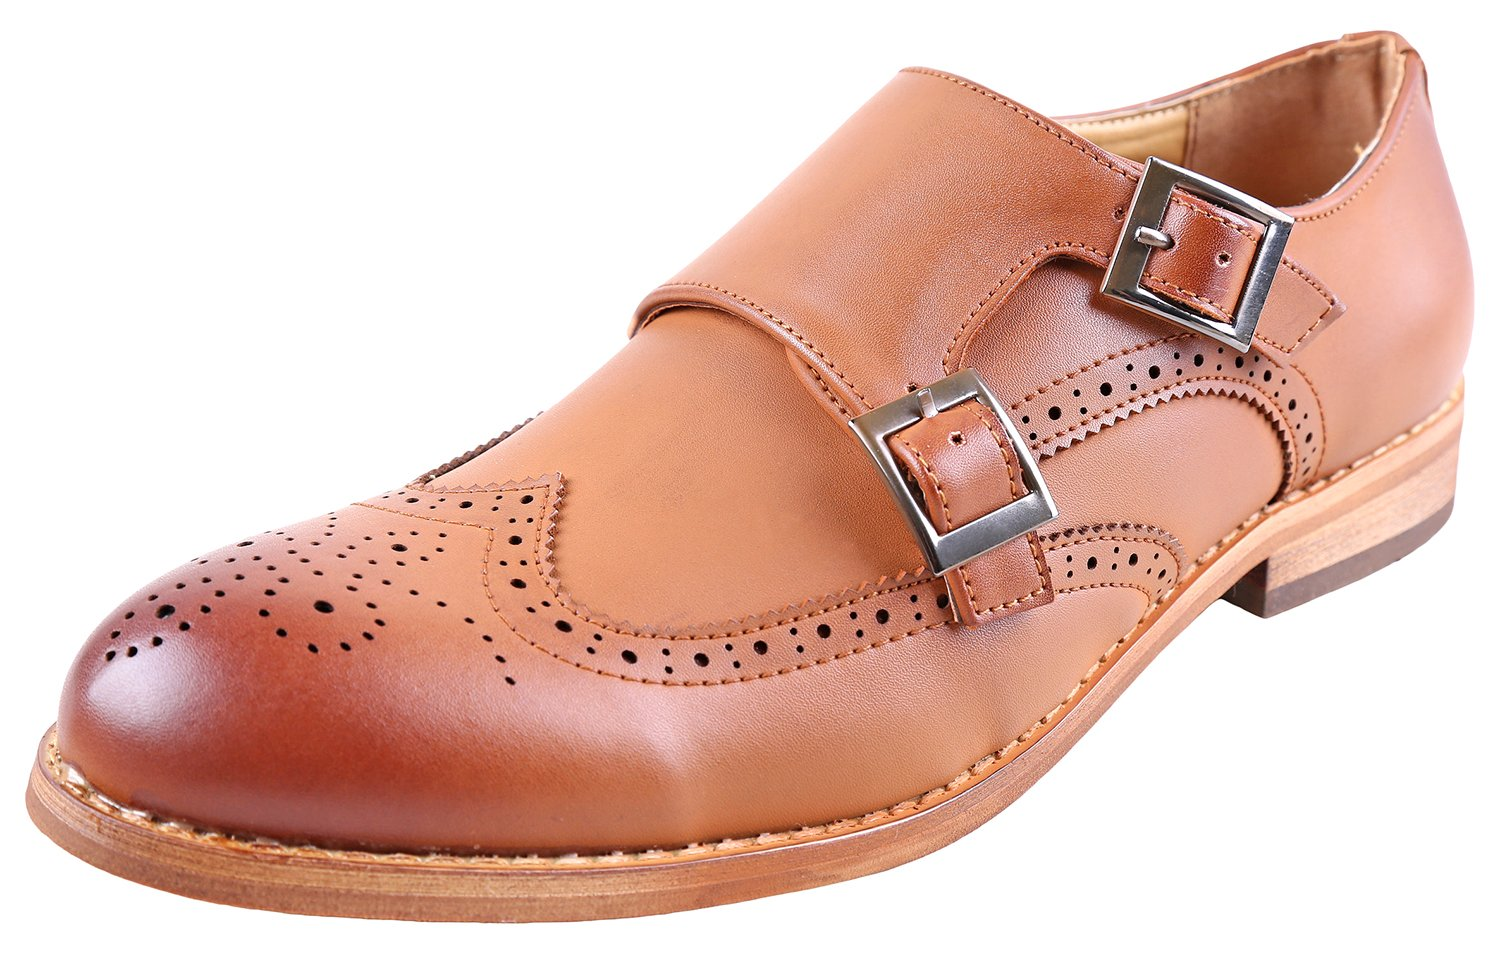 Urban Fox Allen Men's Dress Shoe | Double Monk Strap | Brogue | Wingtip Shoes for Men | Light Brown 12